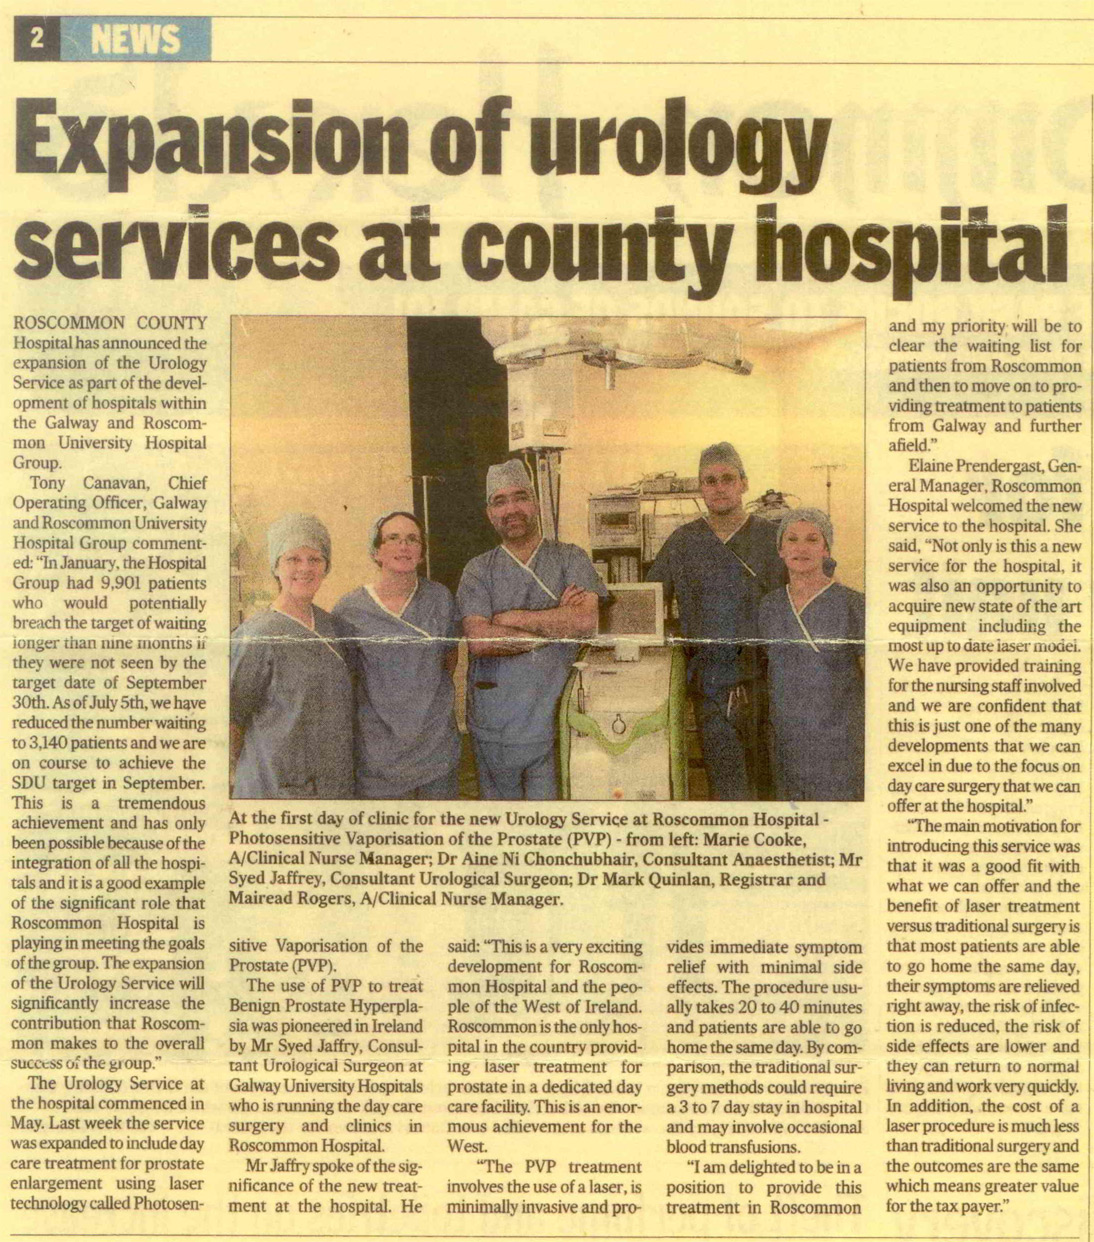 Expansion of Urology Services at County Hospital